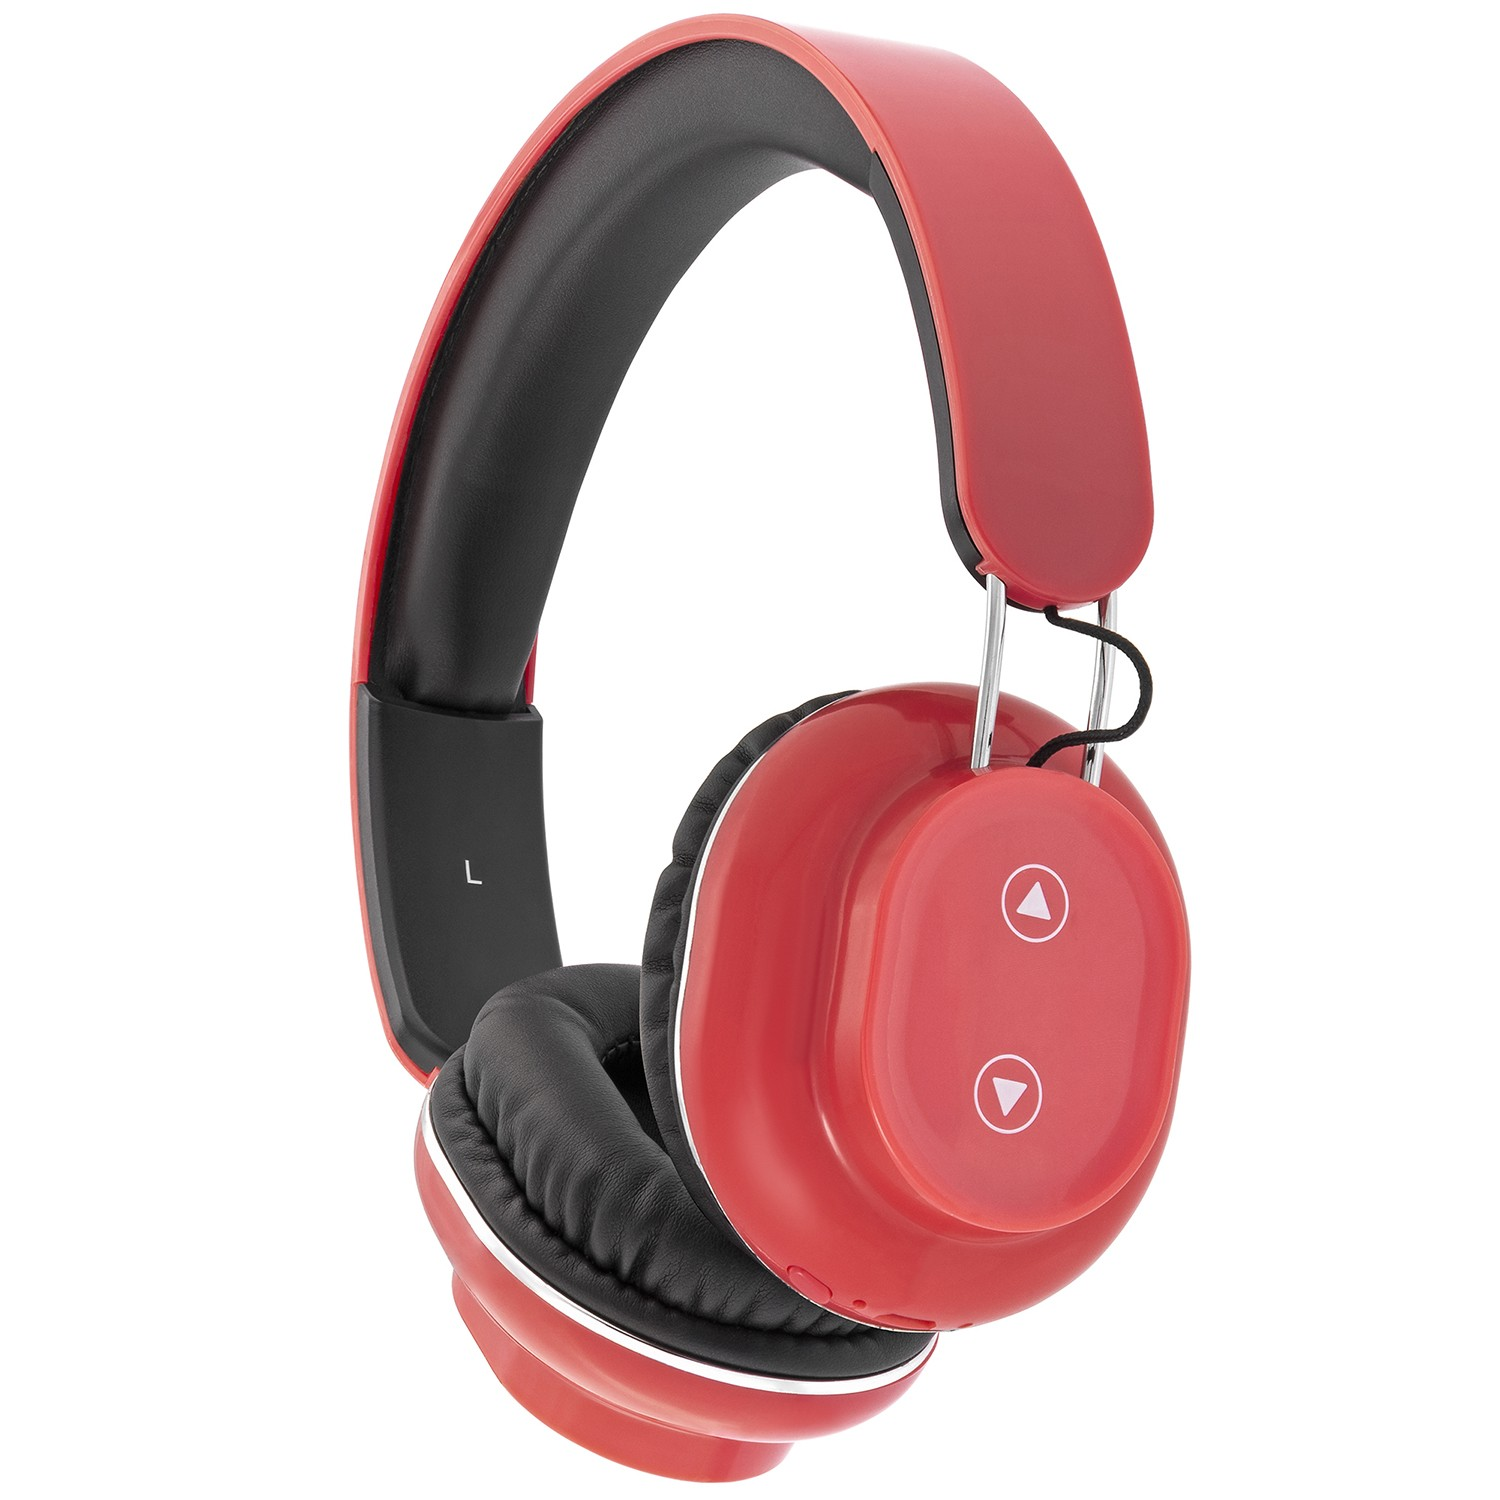 INTERSTEP SBH-350 TOUCH RED (IS-BT-SBH350JRD-000B201)